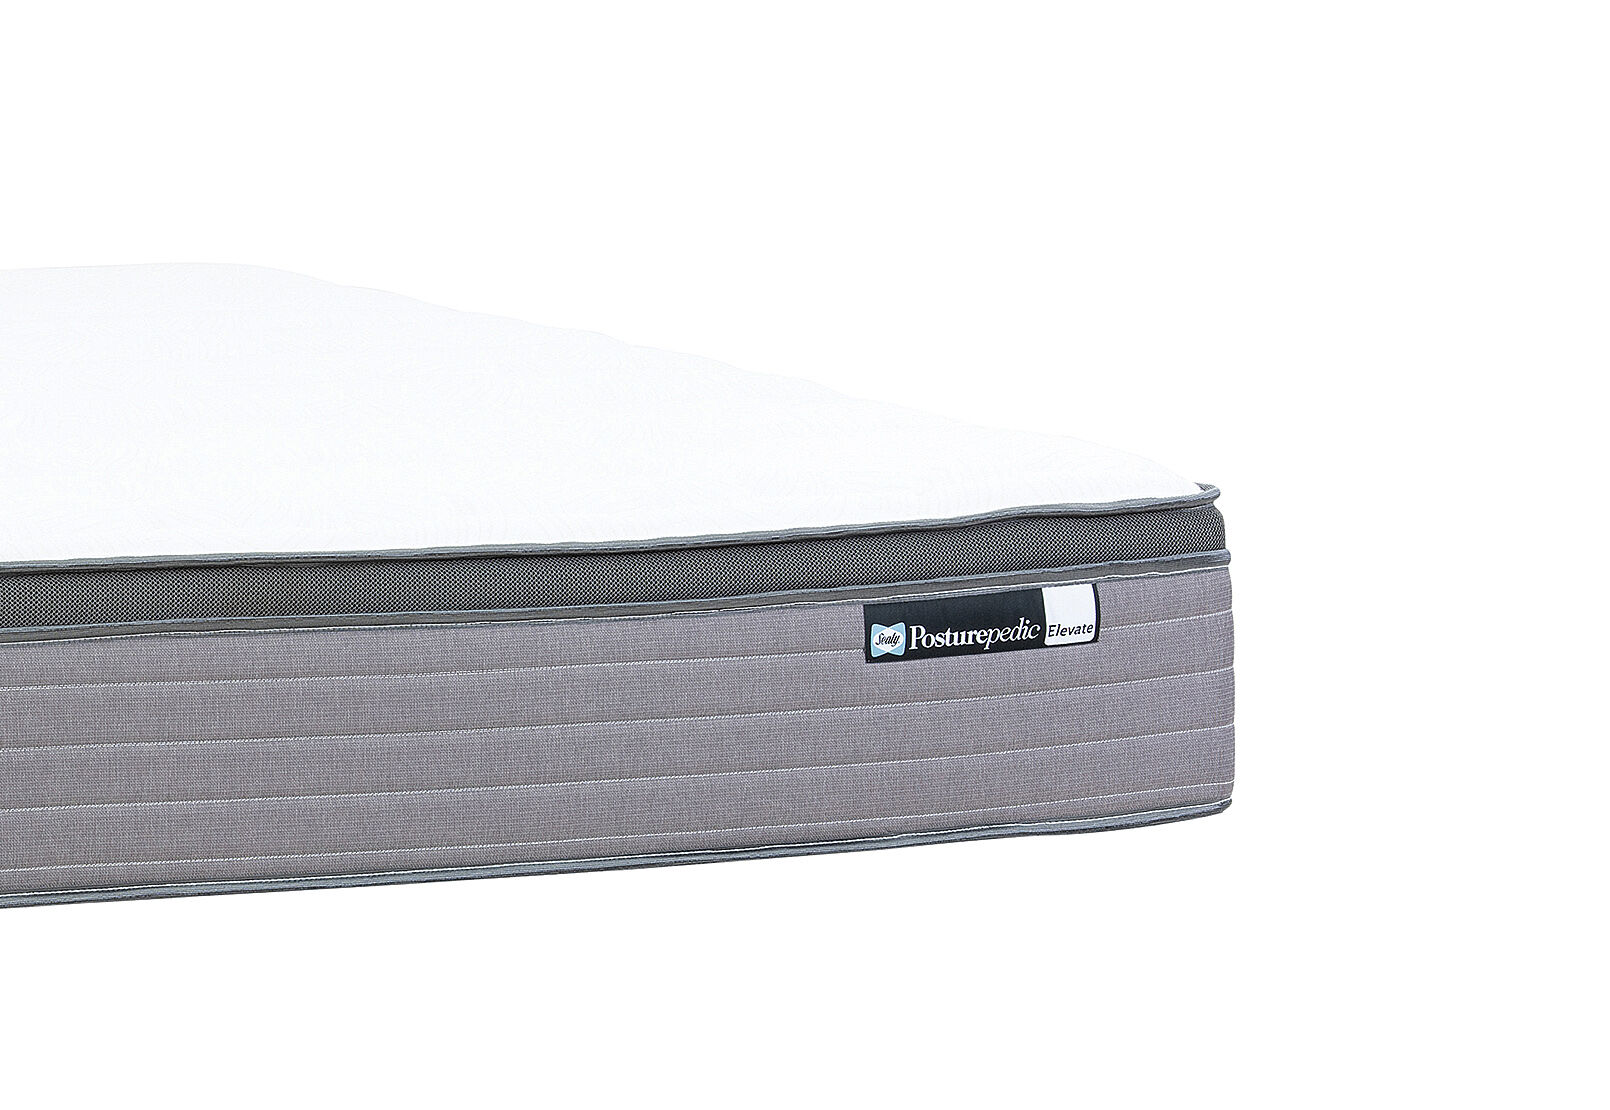 POSTUREPEDIC ELEVATE SUPREME ULTRA PLUSH